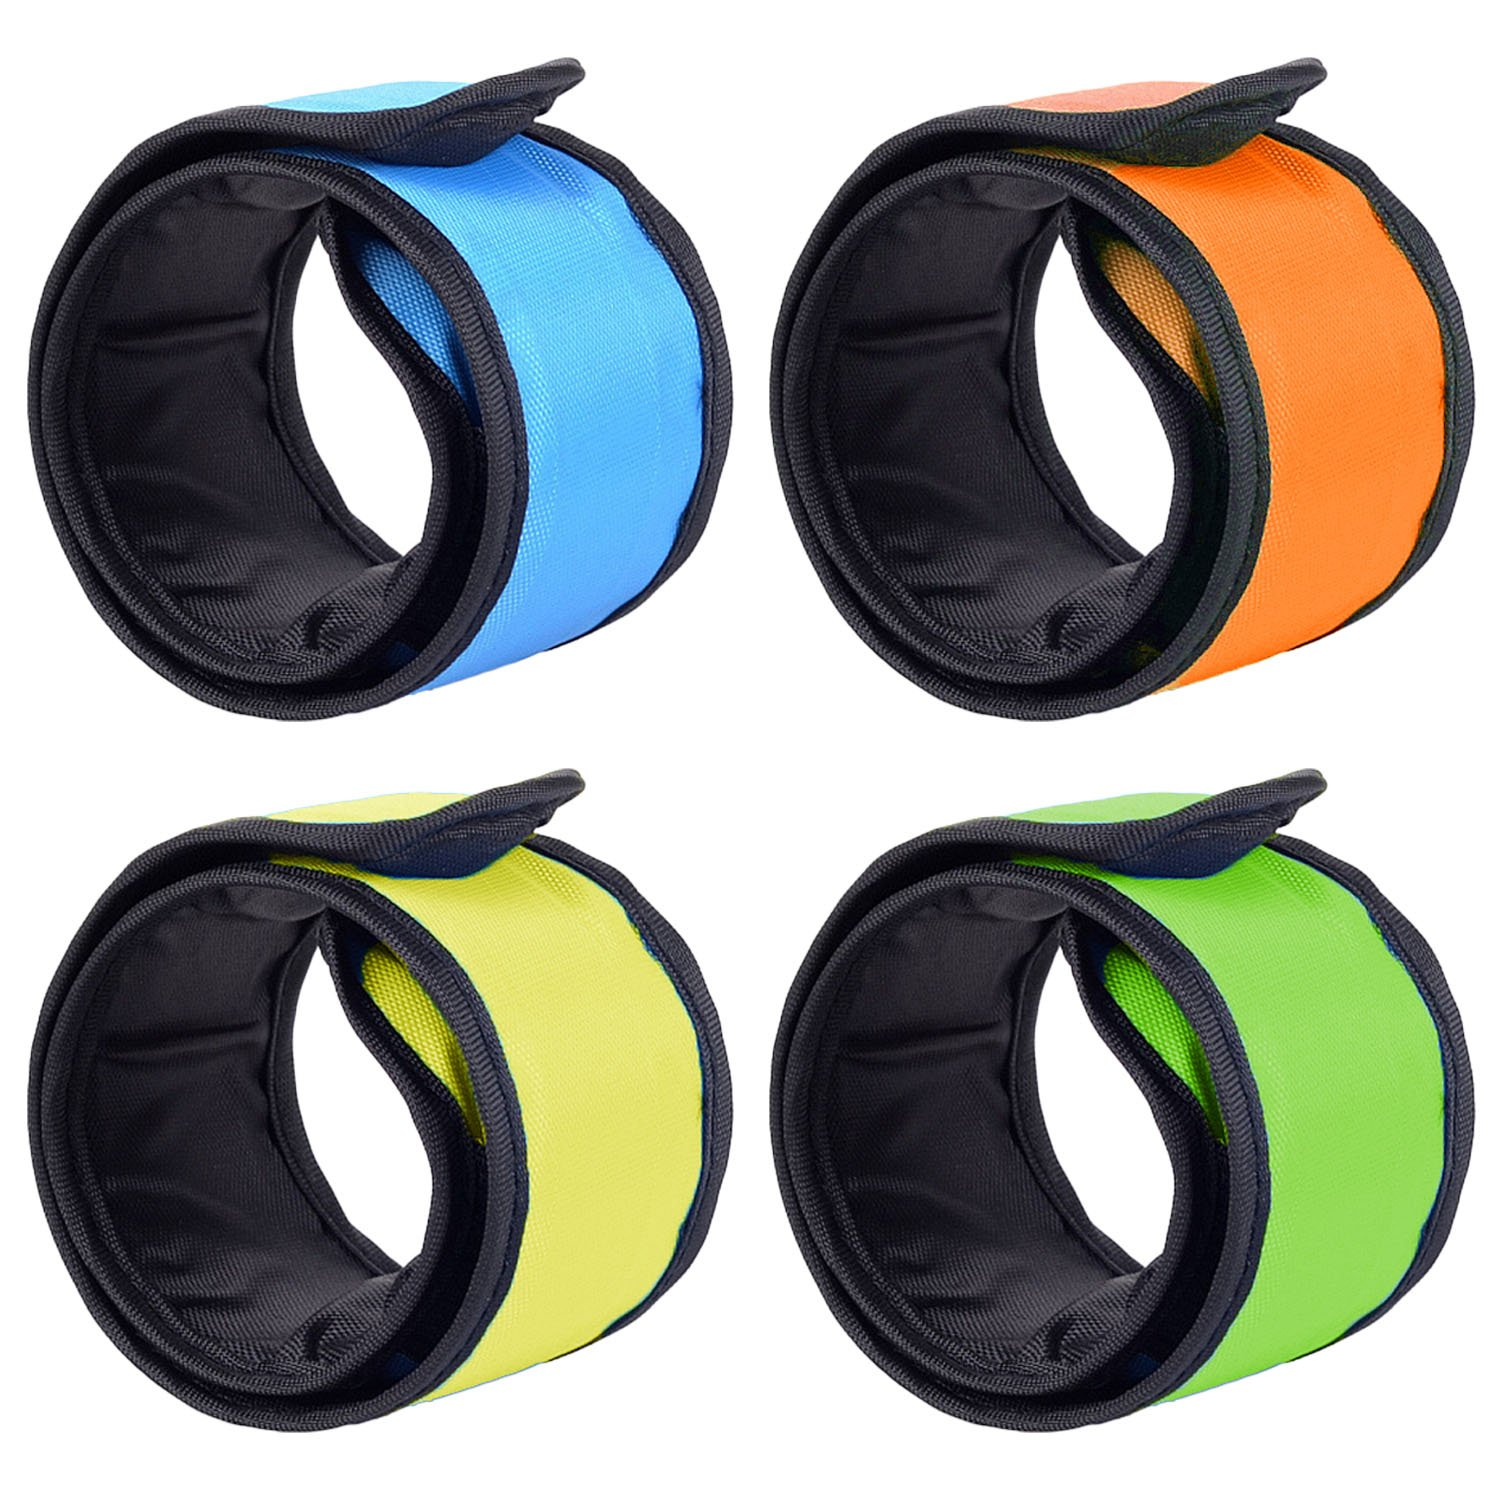 4pcs LED Glow Light up Band Slap Night Safety Bracelet Wristband for Cycling Jogging Walking Running Concert Camping Outdoor Sports Beetest